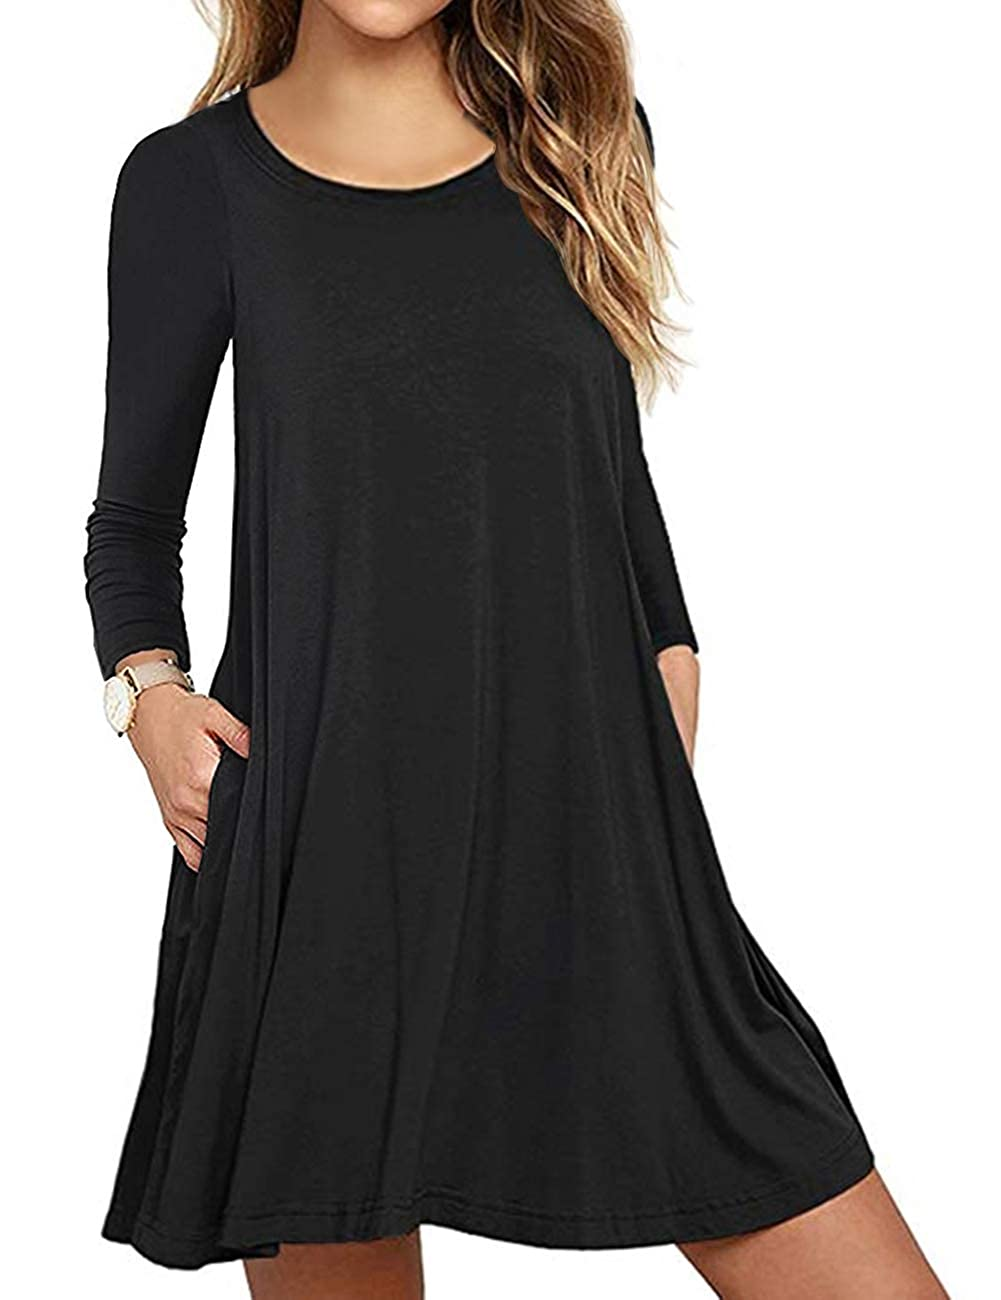 b29b501749c Top4  Sanifer Women s Casual Long Sleeve T Shirt Dress with Pockets Plus  Size Swing Tunic Dress